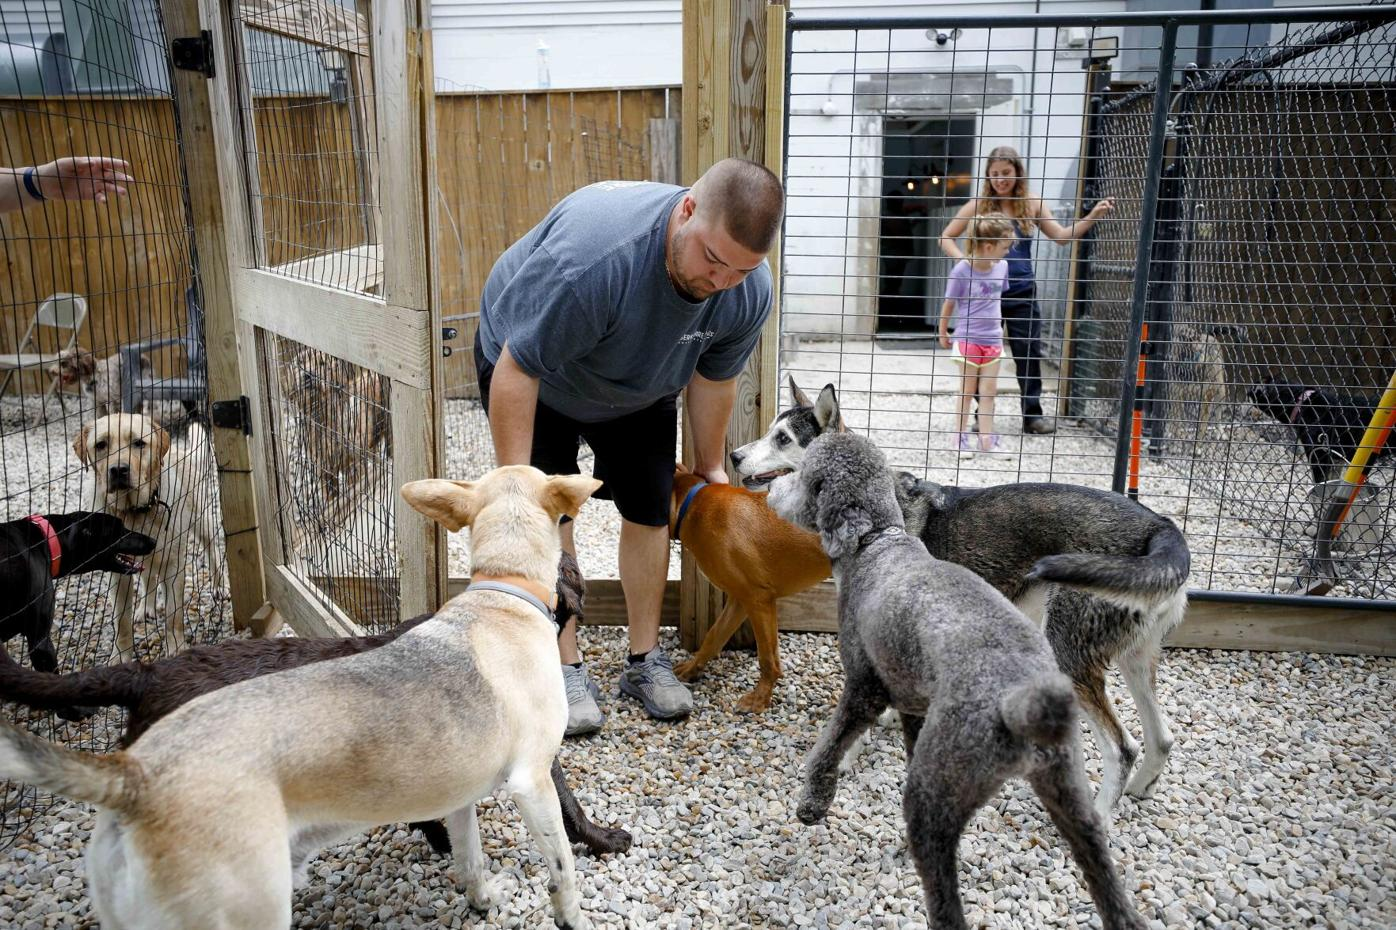 man is surrounded by dogs